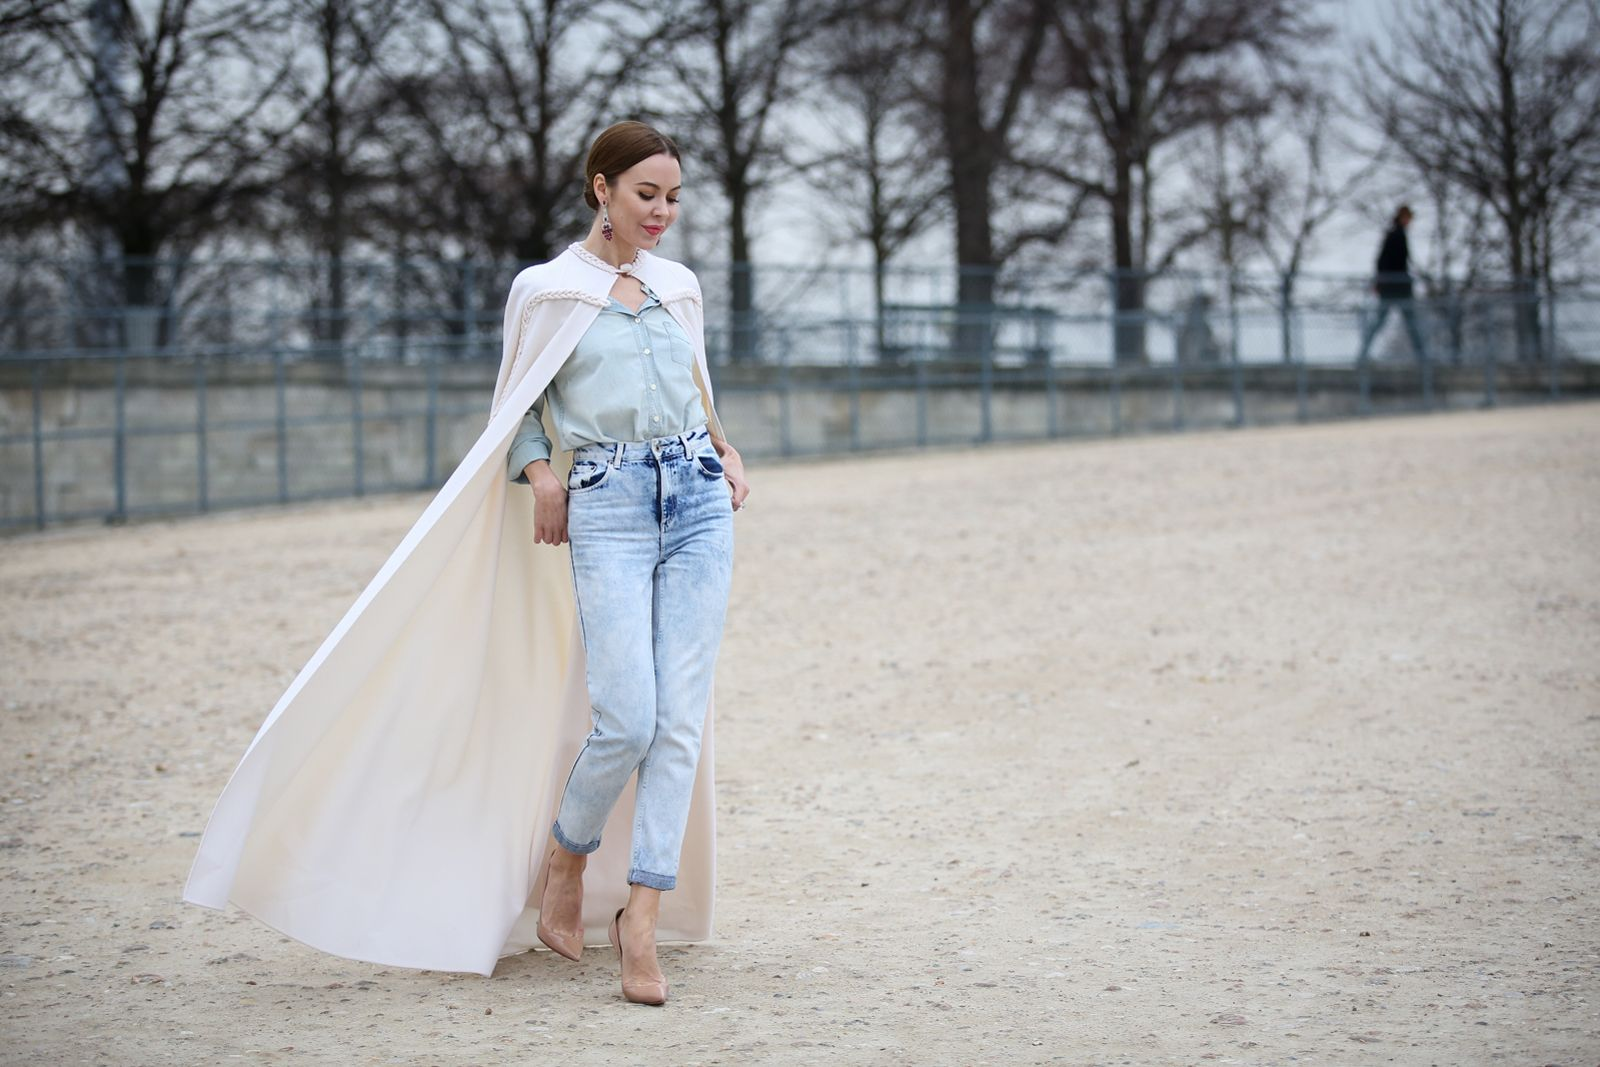 Princess cape? Pair it with jeans for an offbeat combination.